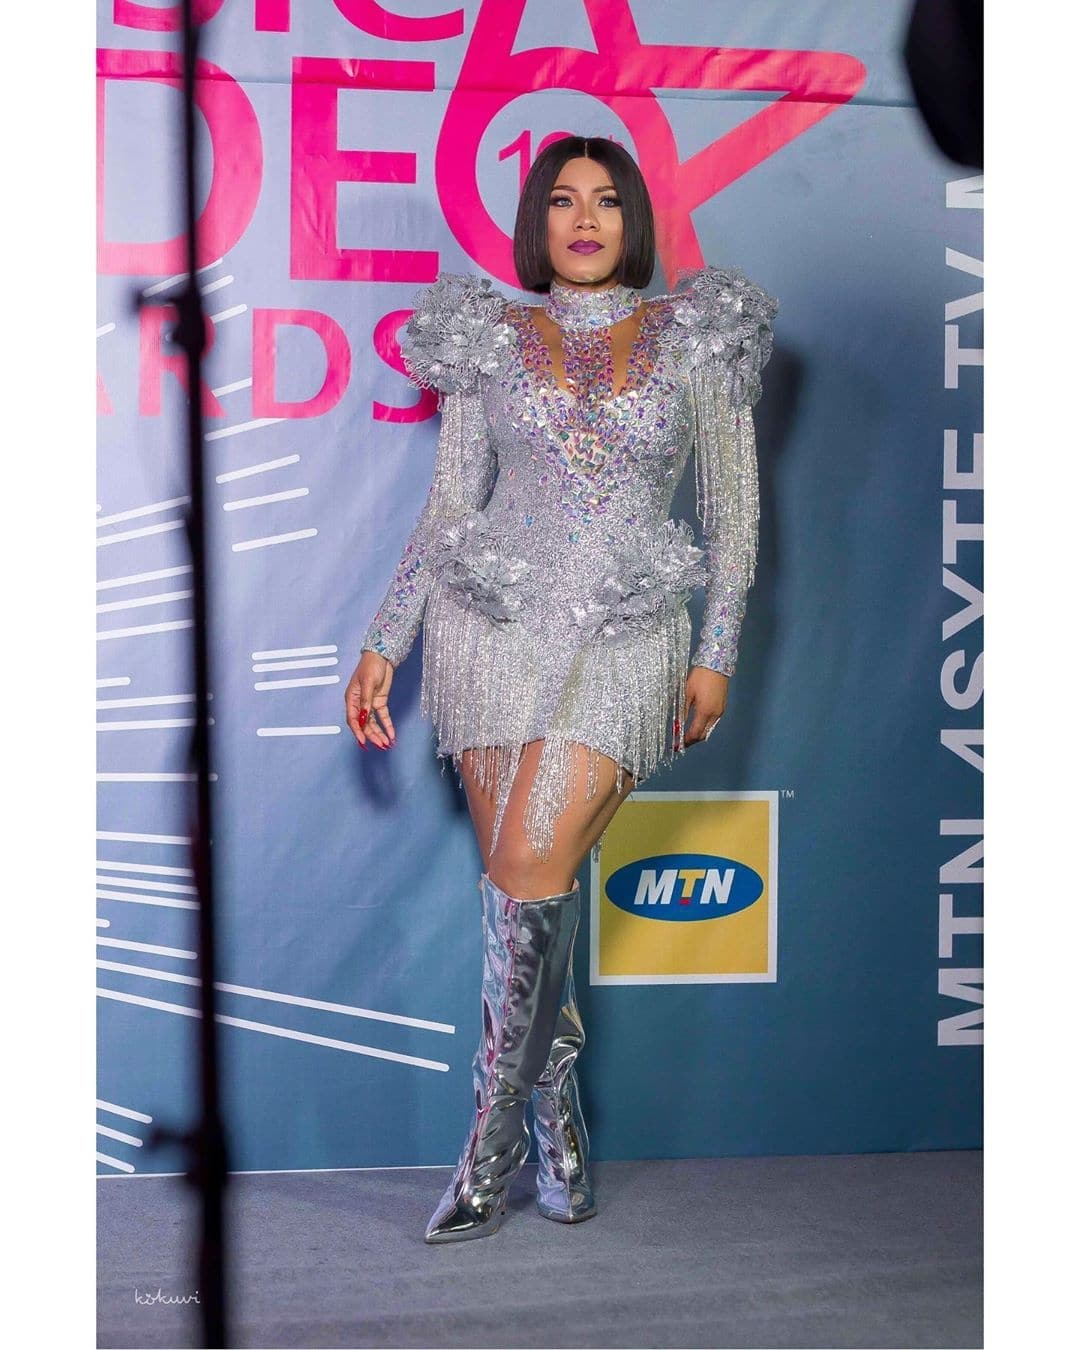 Zynnell-zuh-metallic-outfit-the-most-rave-worthy-looks-on-women-across-africa-african-celebs-style